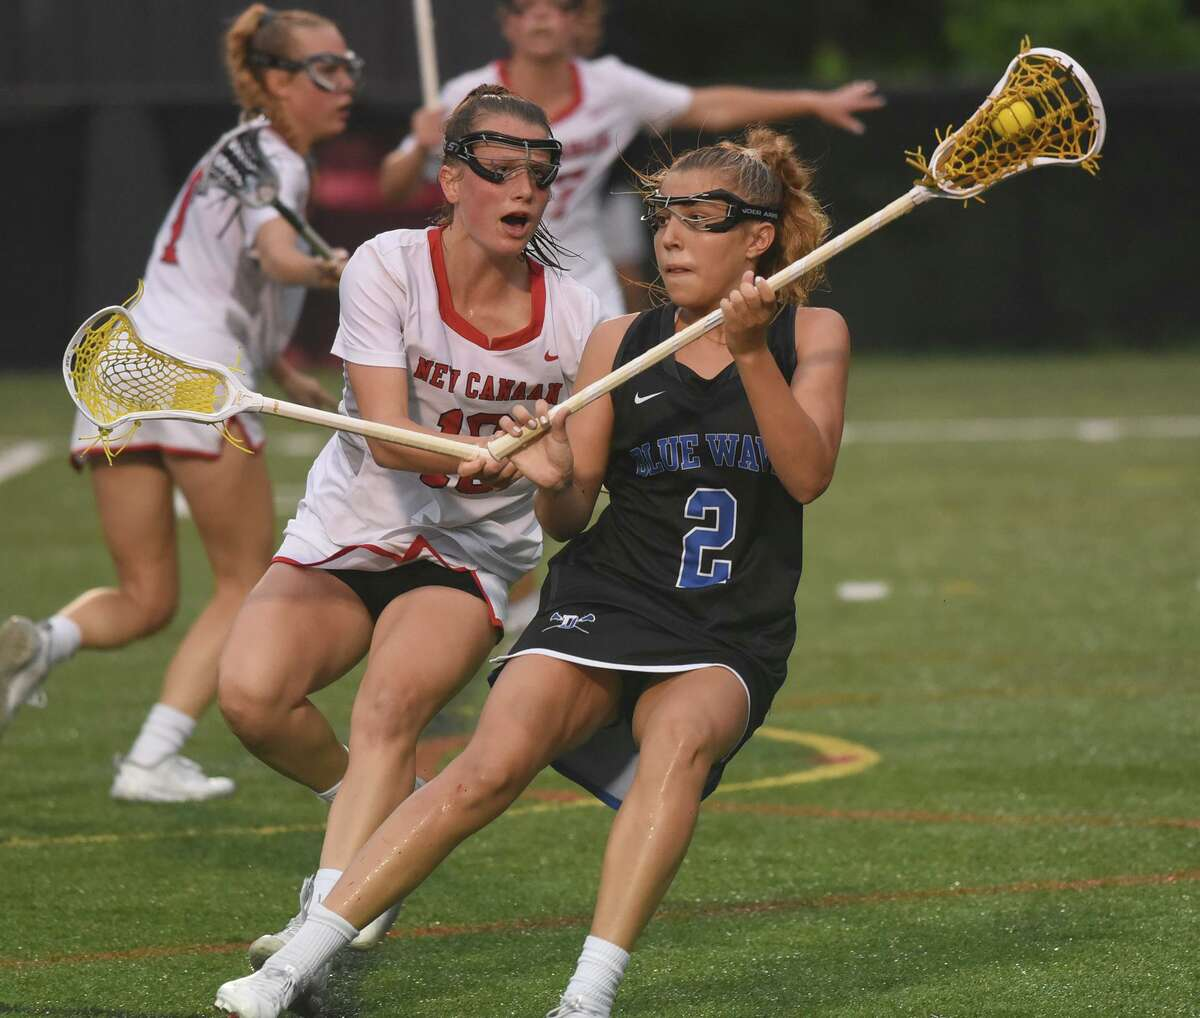 Darien's Chloe Humphrey (2) controls the ball while New Canaan's Jade Lowe (10) defends during a CIAC Class L girls lacrosse semifinal game at Dunning Field on Tuesday, June 8, 2021.